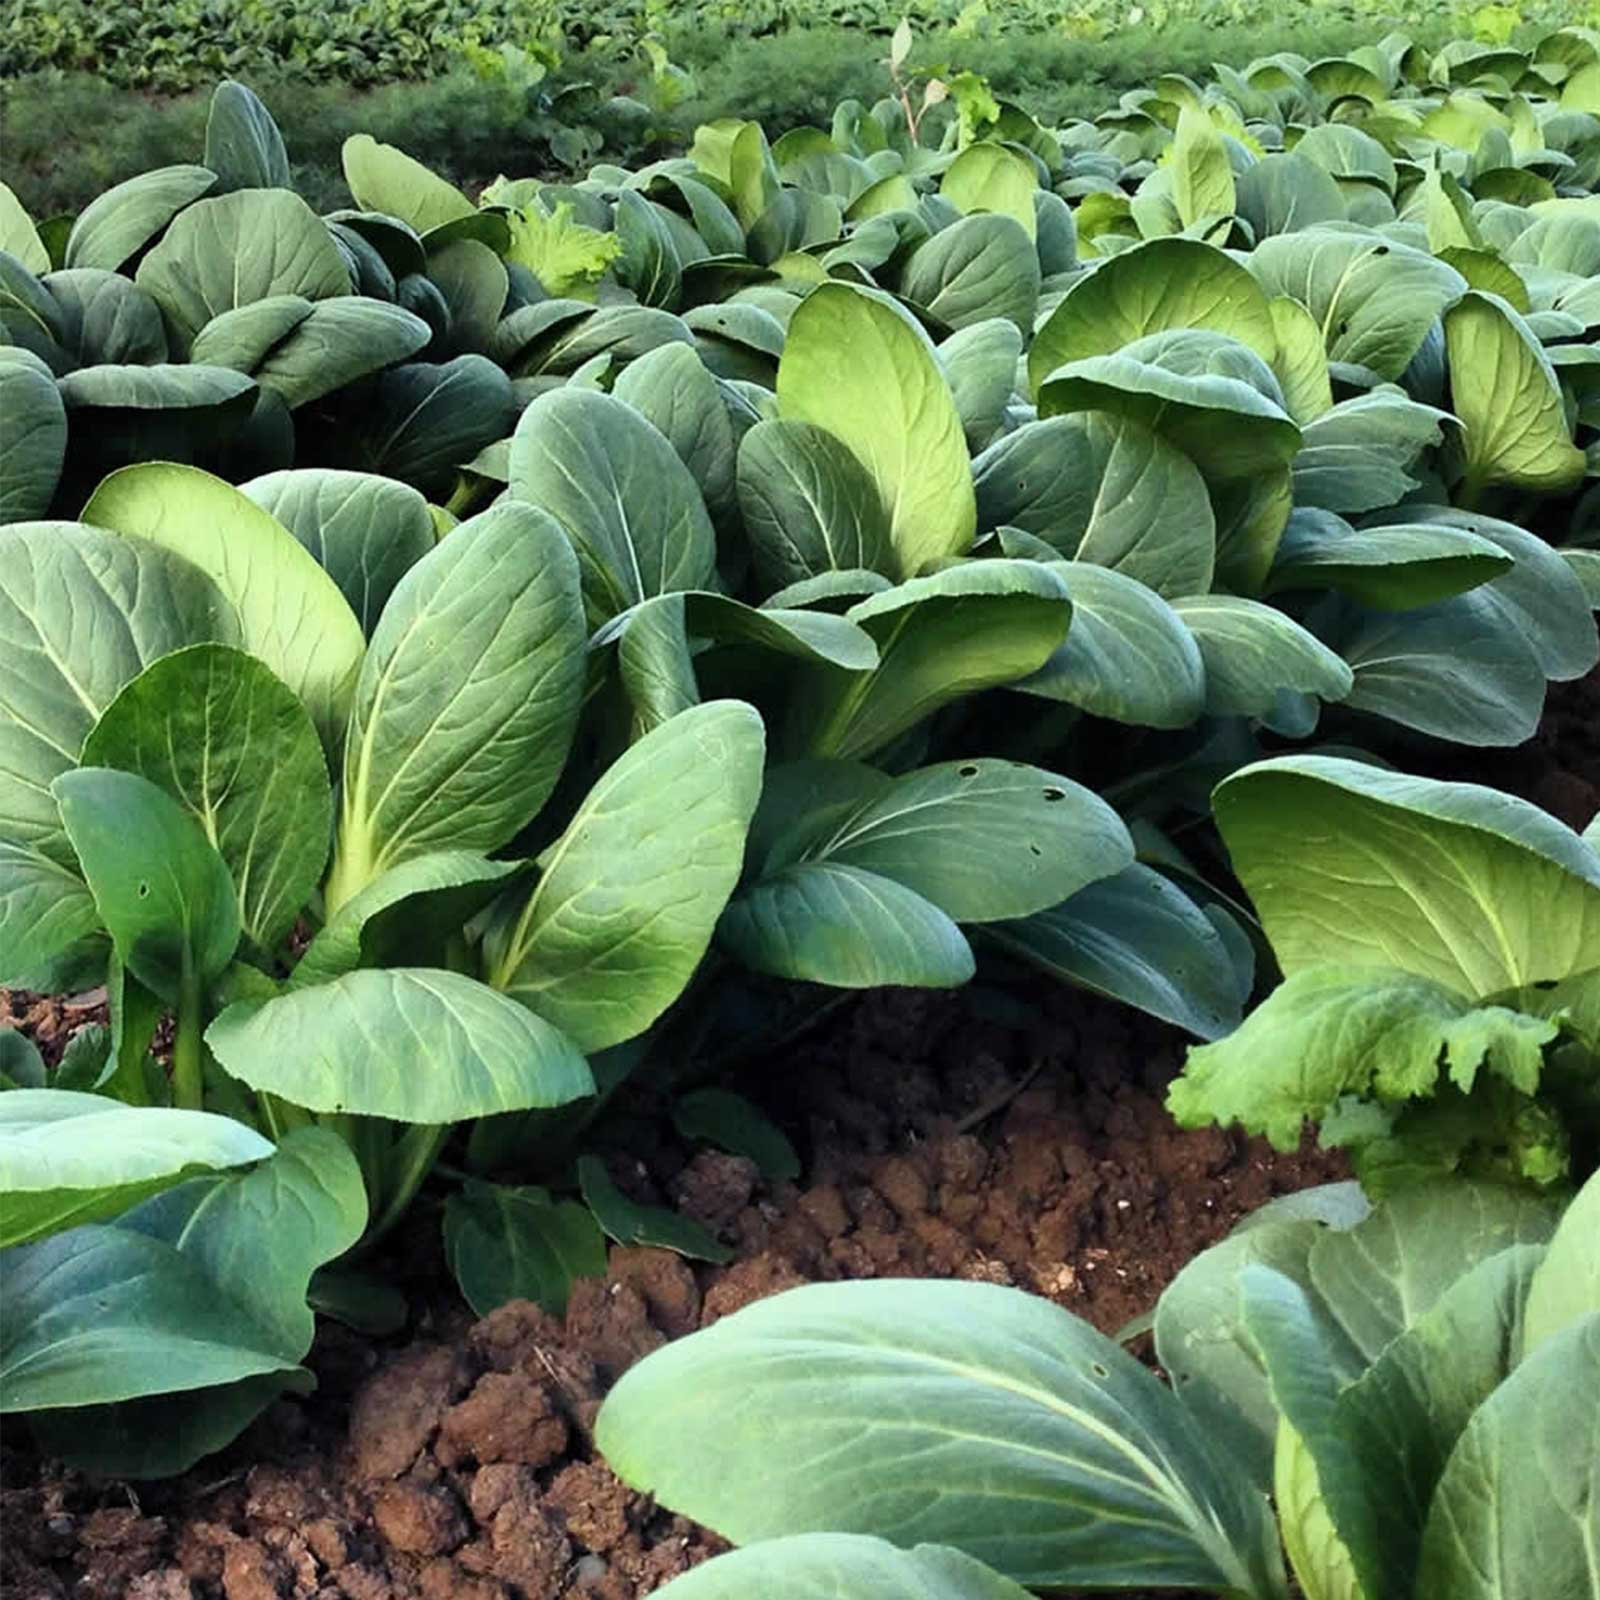 White Stem Pak Choi Cabbage Seeds: 25 Lb Bulk, Non-GMO Pakchoi Sprouting Seeds Microgreens, Vegetable Gardening by Mountain Valley Seed Company